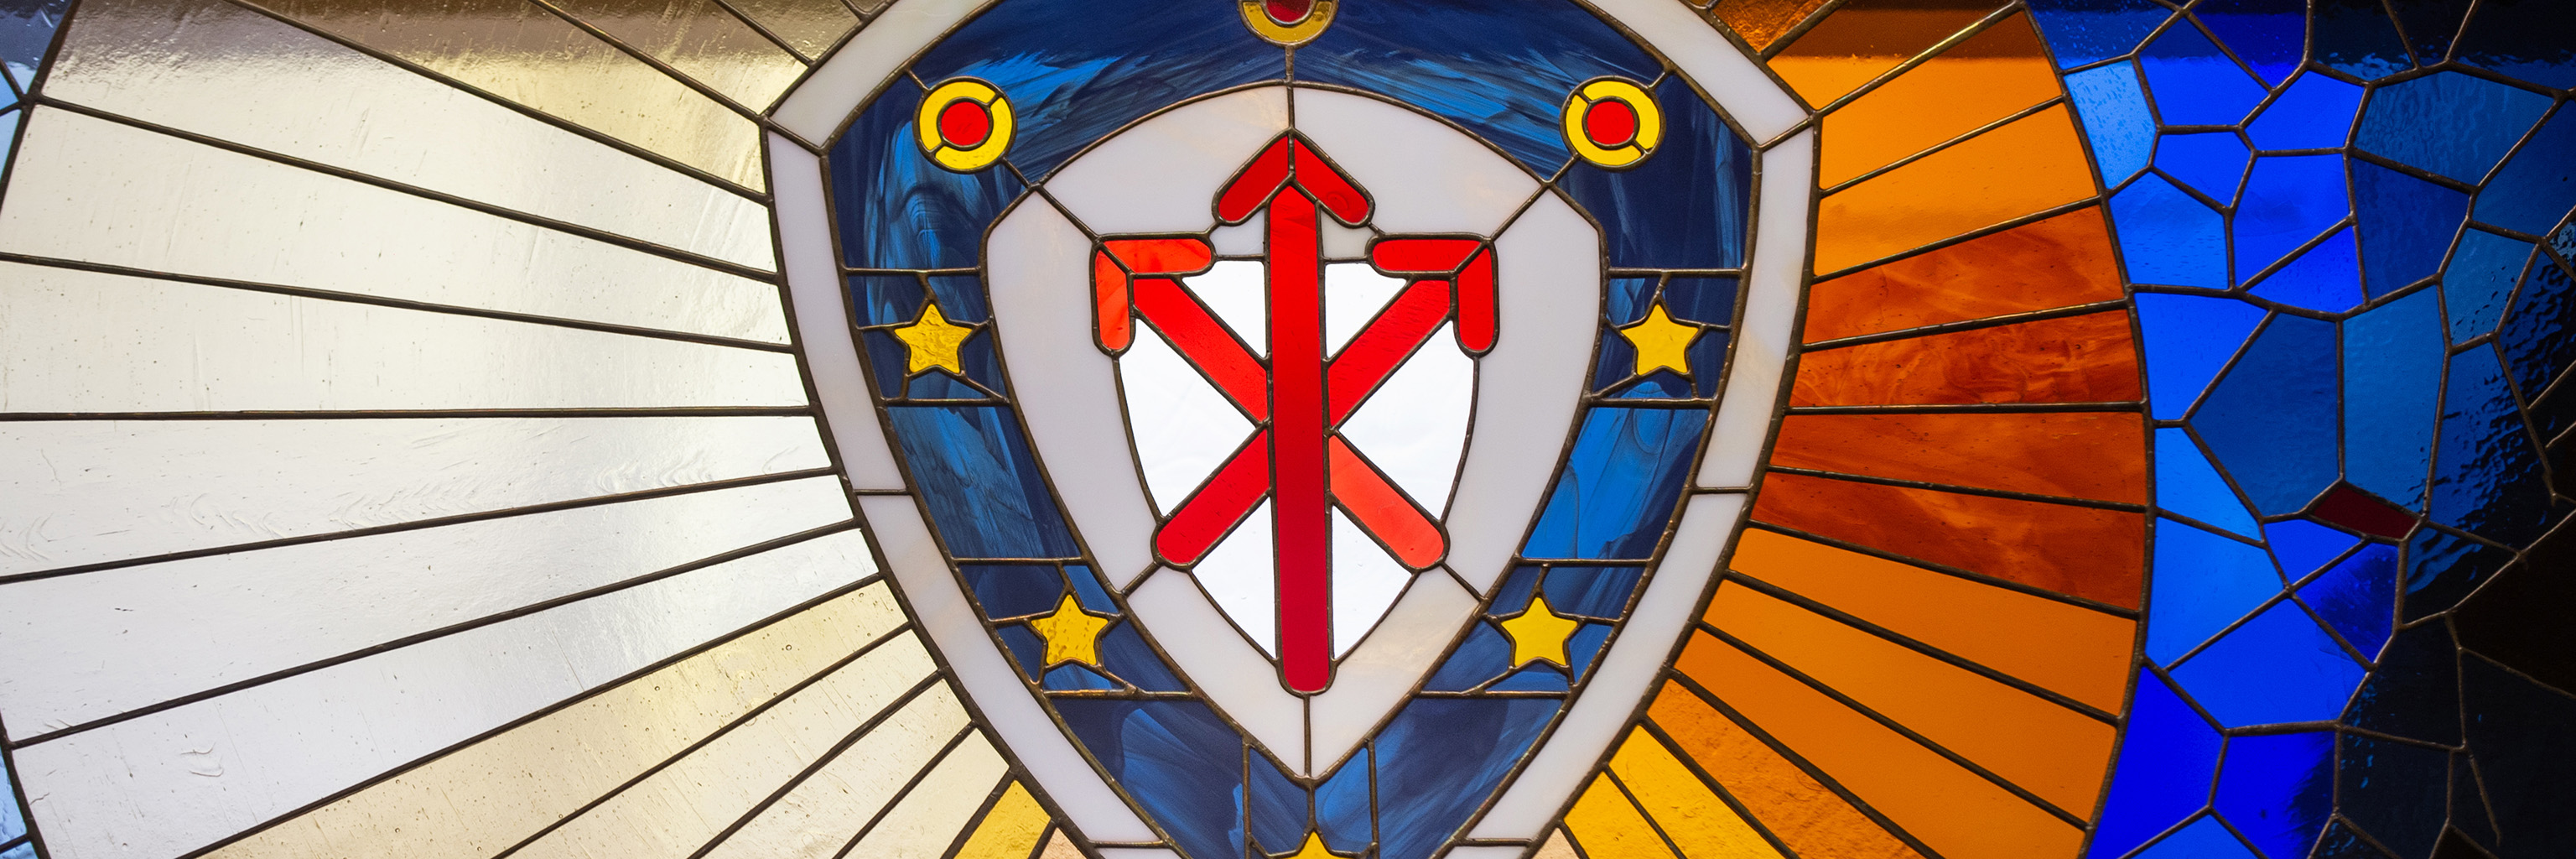 The Indiana University College of Arts and Sciences shield design displayed in stained glass